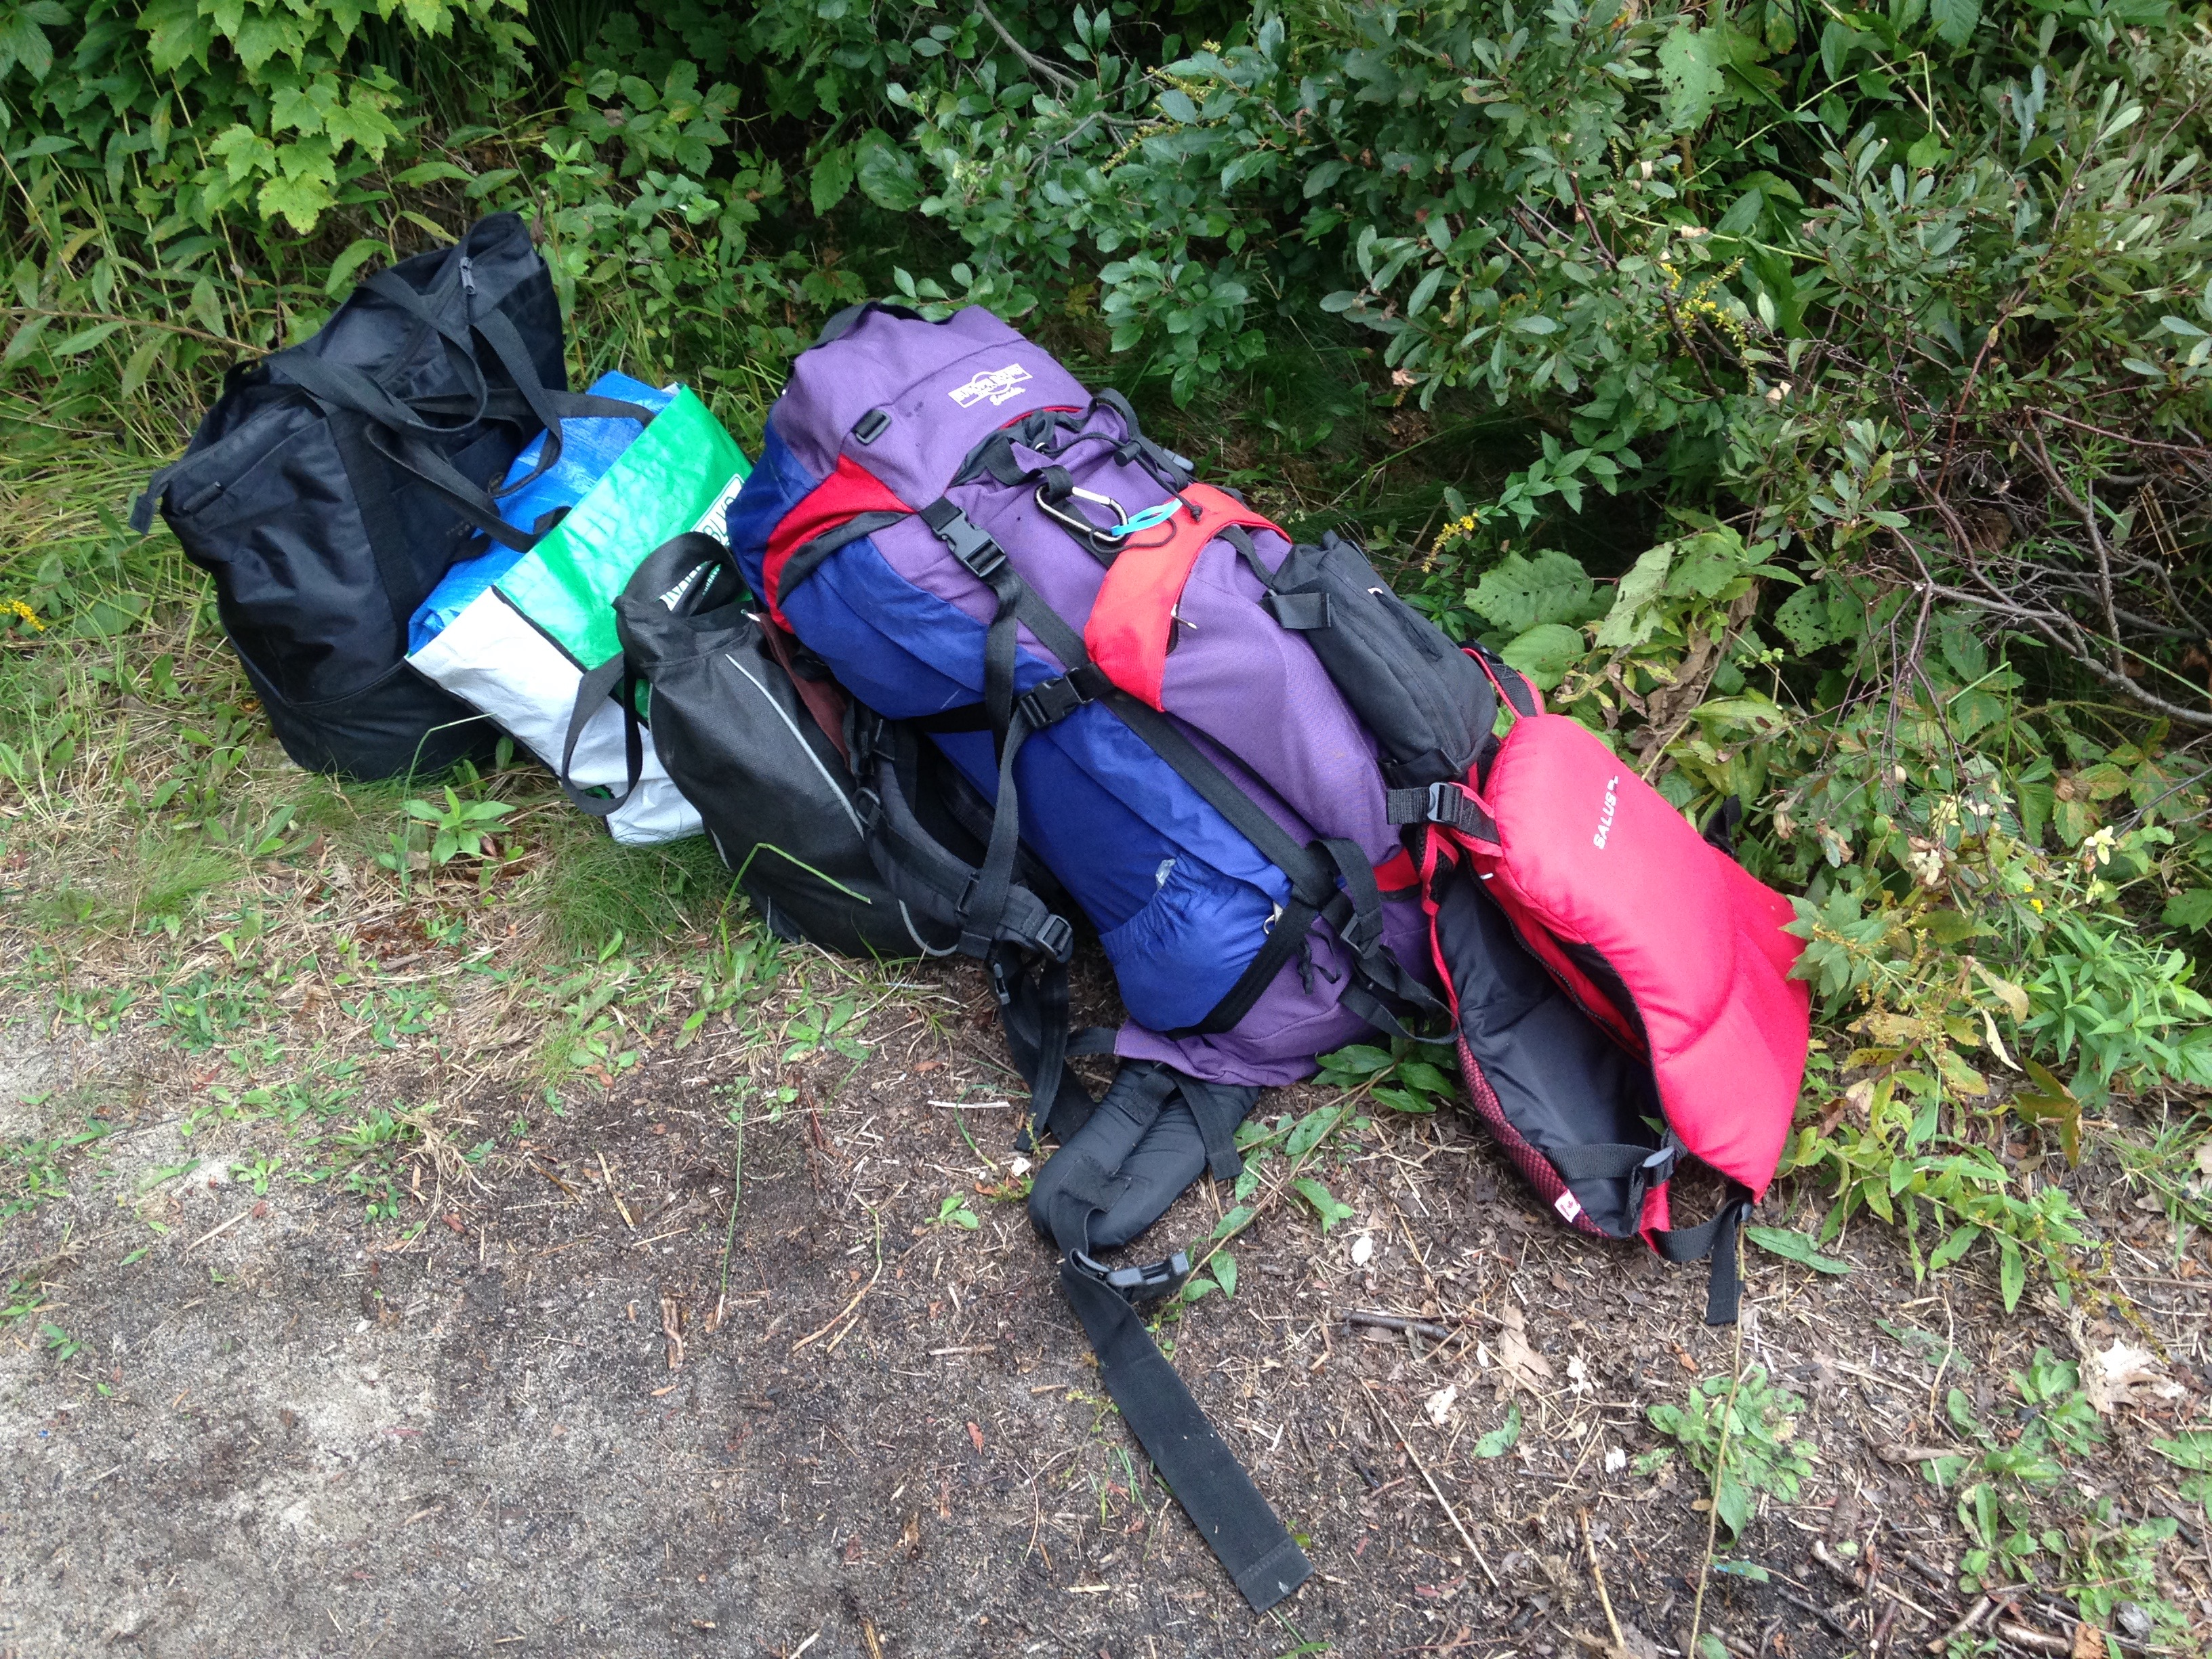 This is everything I carried in one trip. Then returned to get my boat and one cinch bag that remained.